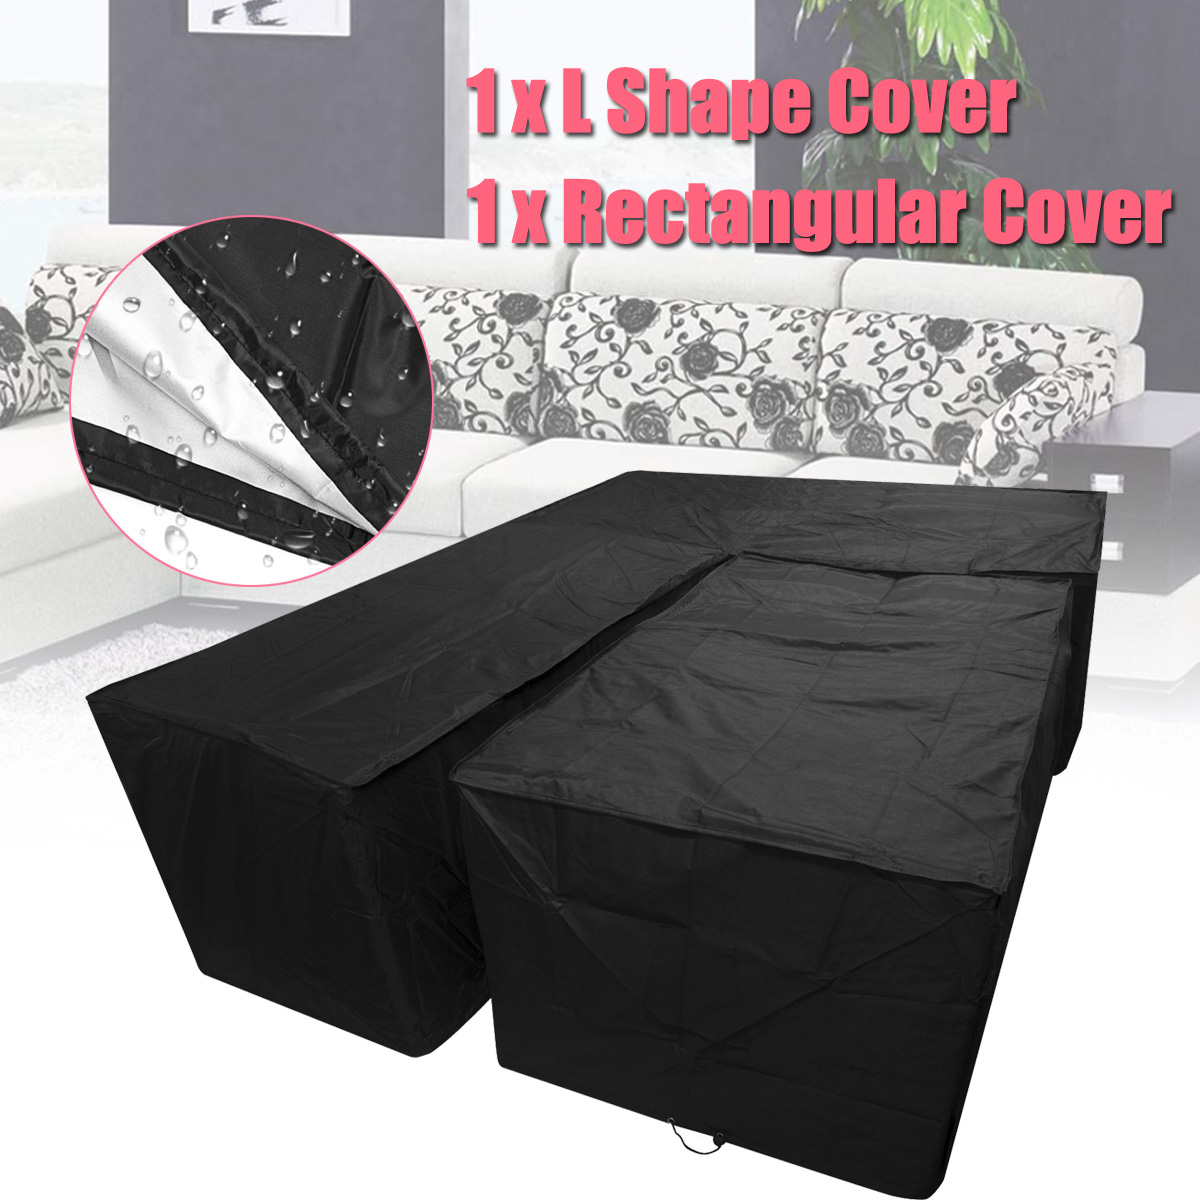 2Pcs/Set Garden Furniture Waterproof Cover Small L-Shaped Dustproof Sofa Couch Cover Set